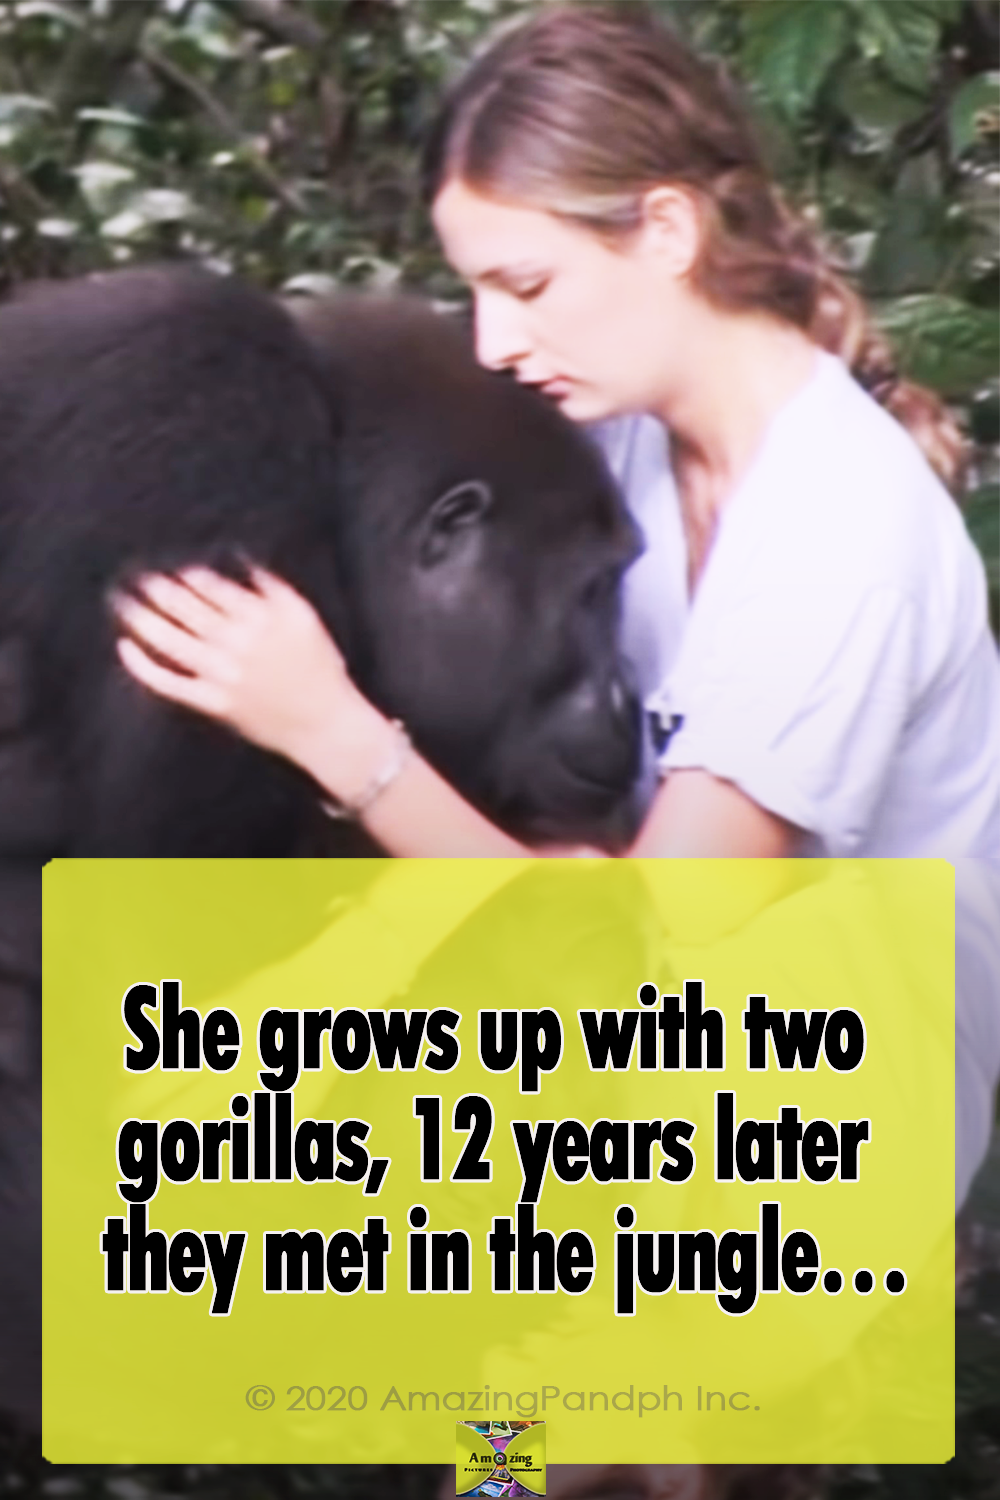 ,does a gorilla weigh,do gorillas swing on vines,do gorillas sweat,do gorillas live in the rainforest,do gorillas live in africa,do gorillas have tails,do gorillas eat meat,do gorillas eat bananas,do gorillas climb trees,difference between ape and gorilla,cross river gorilla,could a human fight a gorilla,could a gorilla raise a human baby,could a gorilla kill a lion,could a gorilla kill a human,could a gorilla kill a bear,could a gorilla impregnate a human,can you see the dancing gorilla,can gorillas swim,can a gorilla kill a lion,can a gorilla deadlift,bear vs gorilla,attack gorilla,about gorilla glue,about gorilla glass,a silverback gorilla,a lion vs a gorilla,a baby gorilla,apes breeding,apes are monkeys,apes animal,apes and monkeys,apes and humans,apes and great apes,apes and gorillas,apes algoma,apes acronym,apes a poppin,a new planet of the apes movie,a bathing apes,do jungle camps have armor,do jungles have winter,do jungles have bears,can jungle juice kill you,are jungles humid,are jungle worms real,are jungles rainforests,jungle cat,jungle jam,jungle drum,a jungle animal's life,a jungle story,jungle animal pictures,jungle animals,jungle fever,jungle island,animals in the jungle,an jungle juice,about neon jungle,animal,girl,grows up,two gorillas,gorilla,storie,true storie,best video,kids,speechless,reunion,a rumble in the jungle,